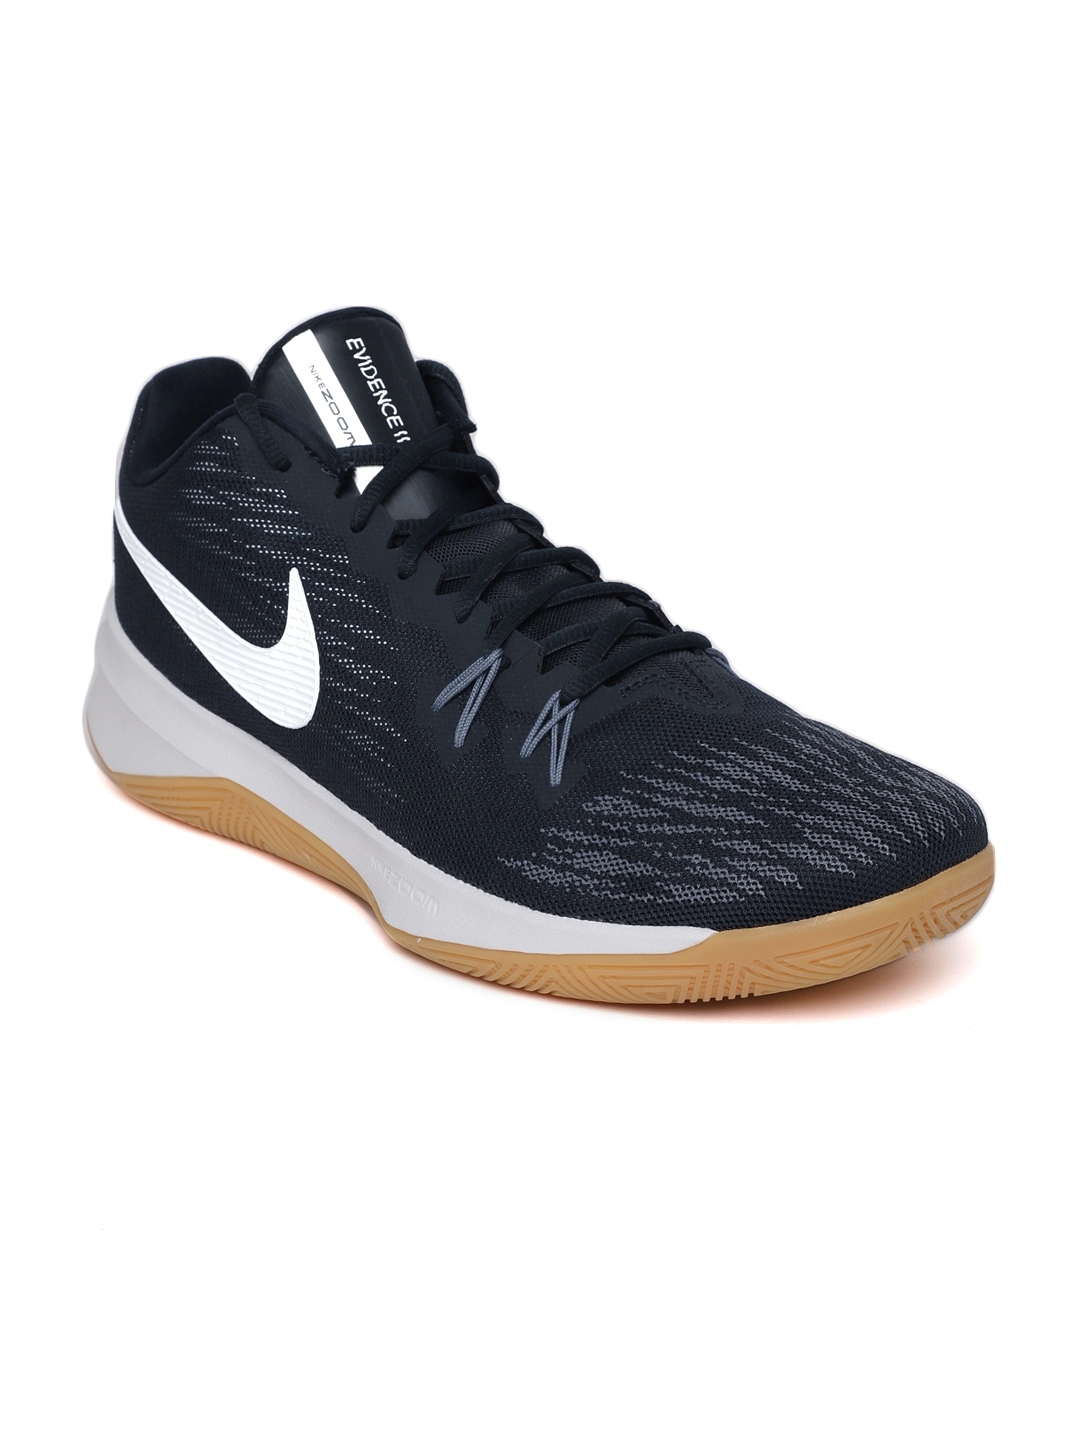 a57879aa5f Buy Nike Men Navy ZOOM EVIDENCE II Basketball Shoes - Sports Shoes ...